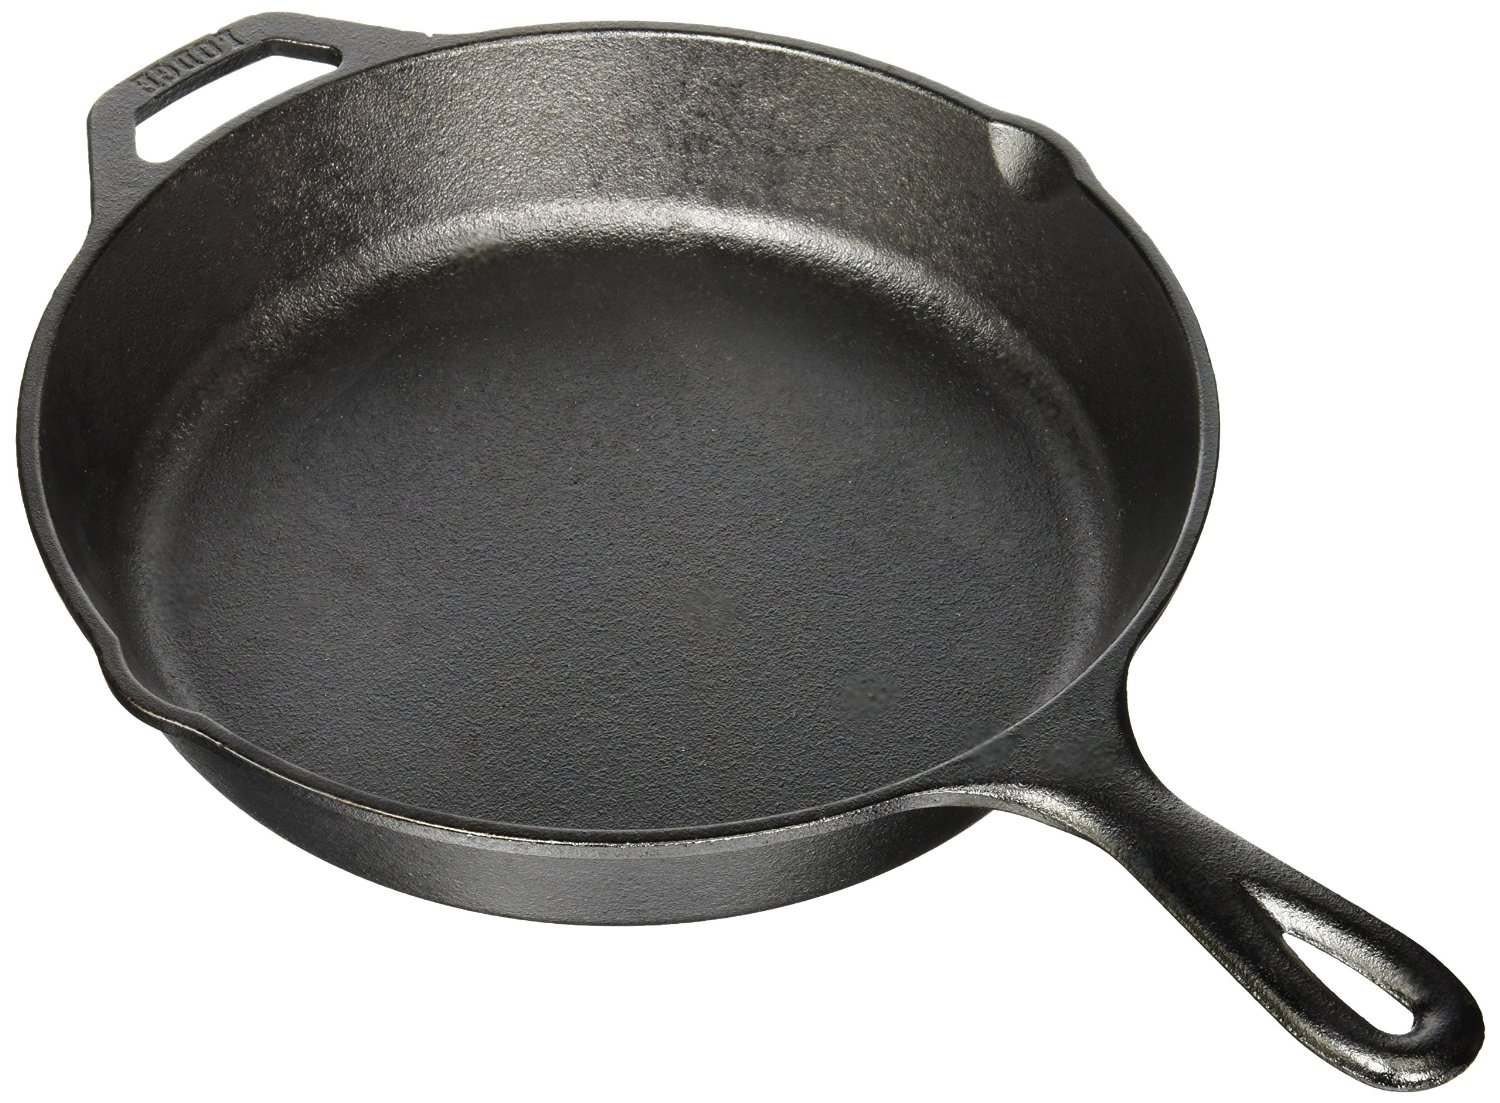 Lodge Logic Pre-Seasoned Cast-Iron Skillet 10.25-inch